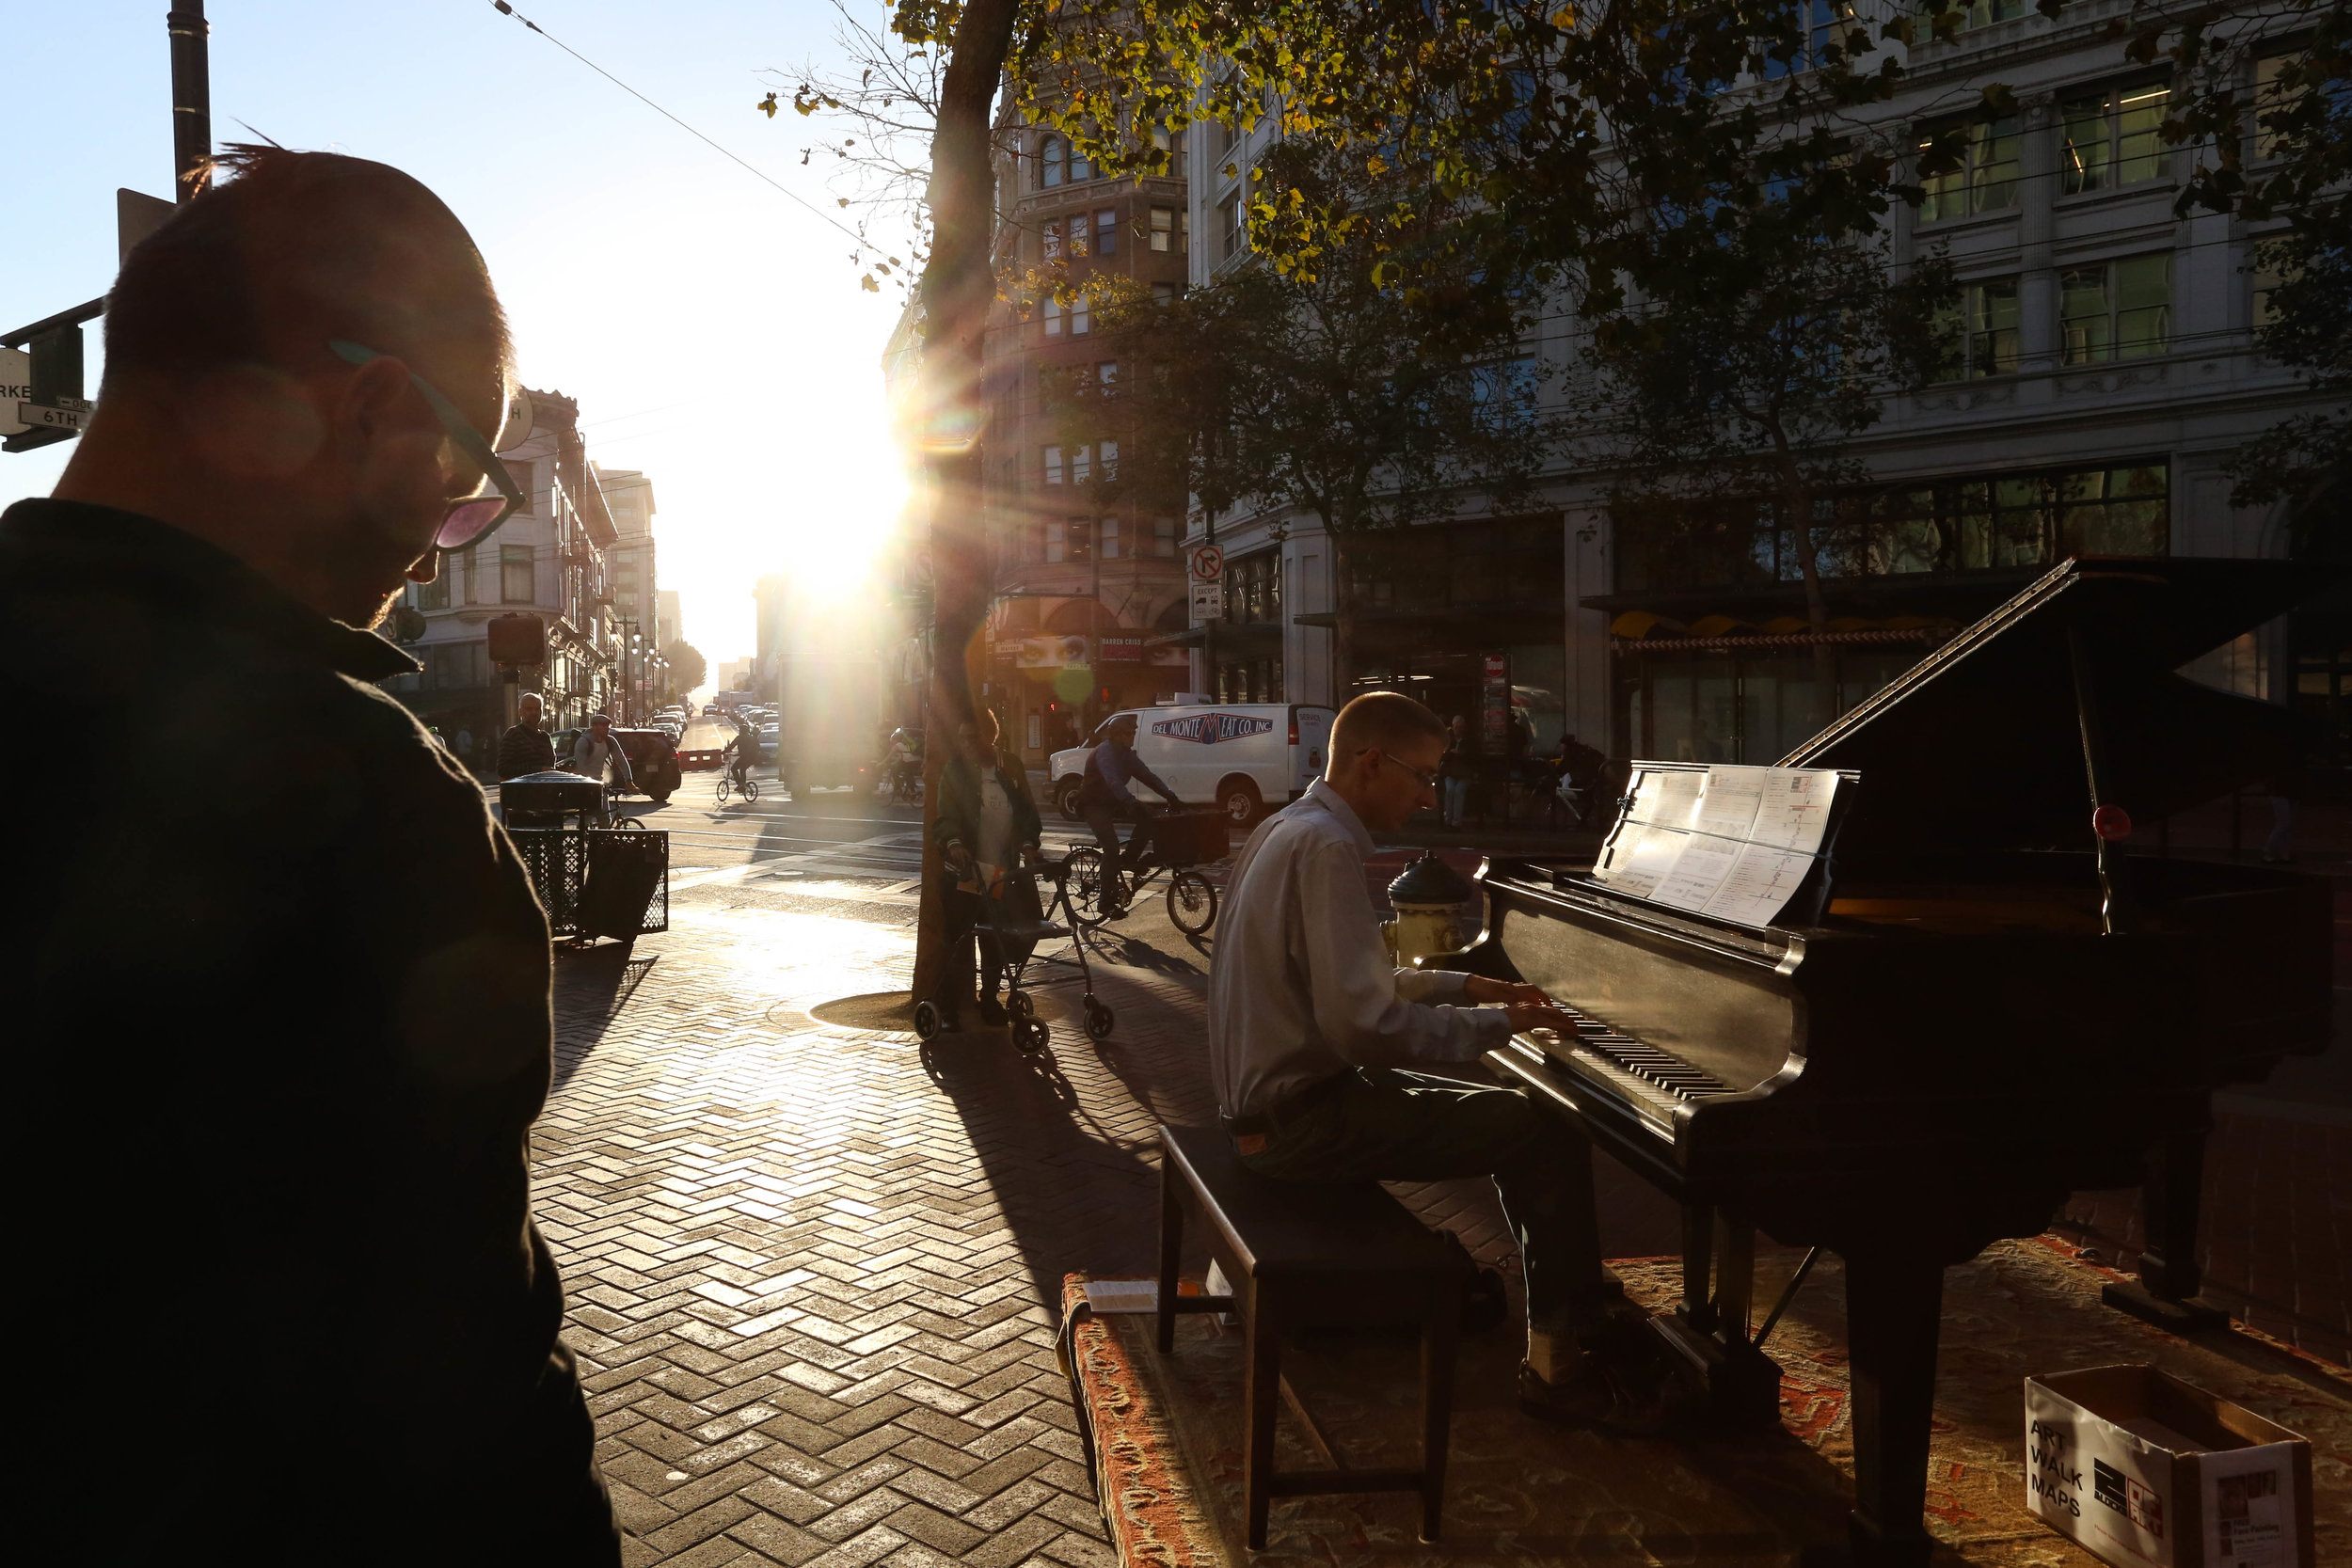 2 Blocks of Art walk begins at Market and Sixth Street with Andrew Barnes Jamieson playing for the Center for New Music. His performance attracts audience members on their way home from work, starting their Friday night and locals. Friday, September 16, 2016.Mid-Market News